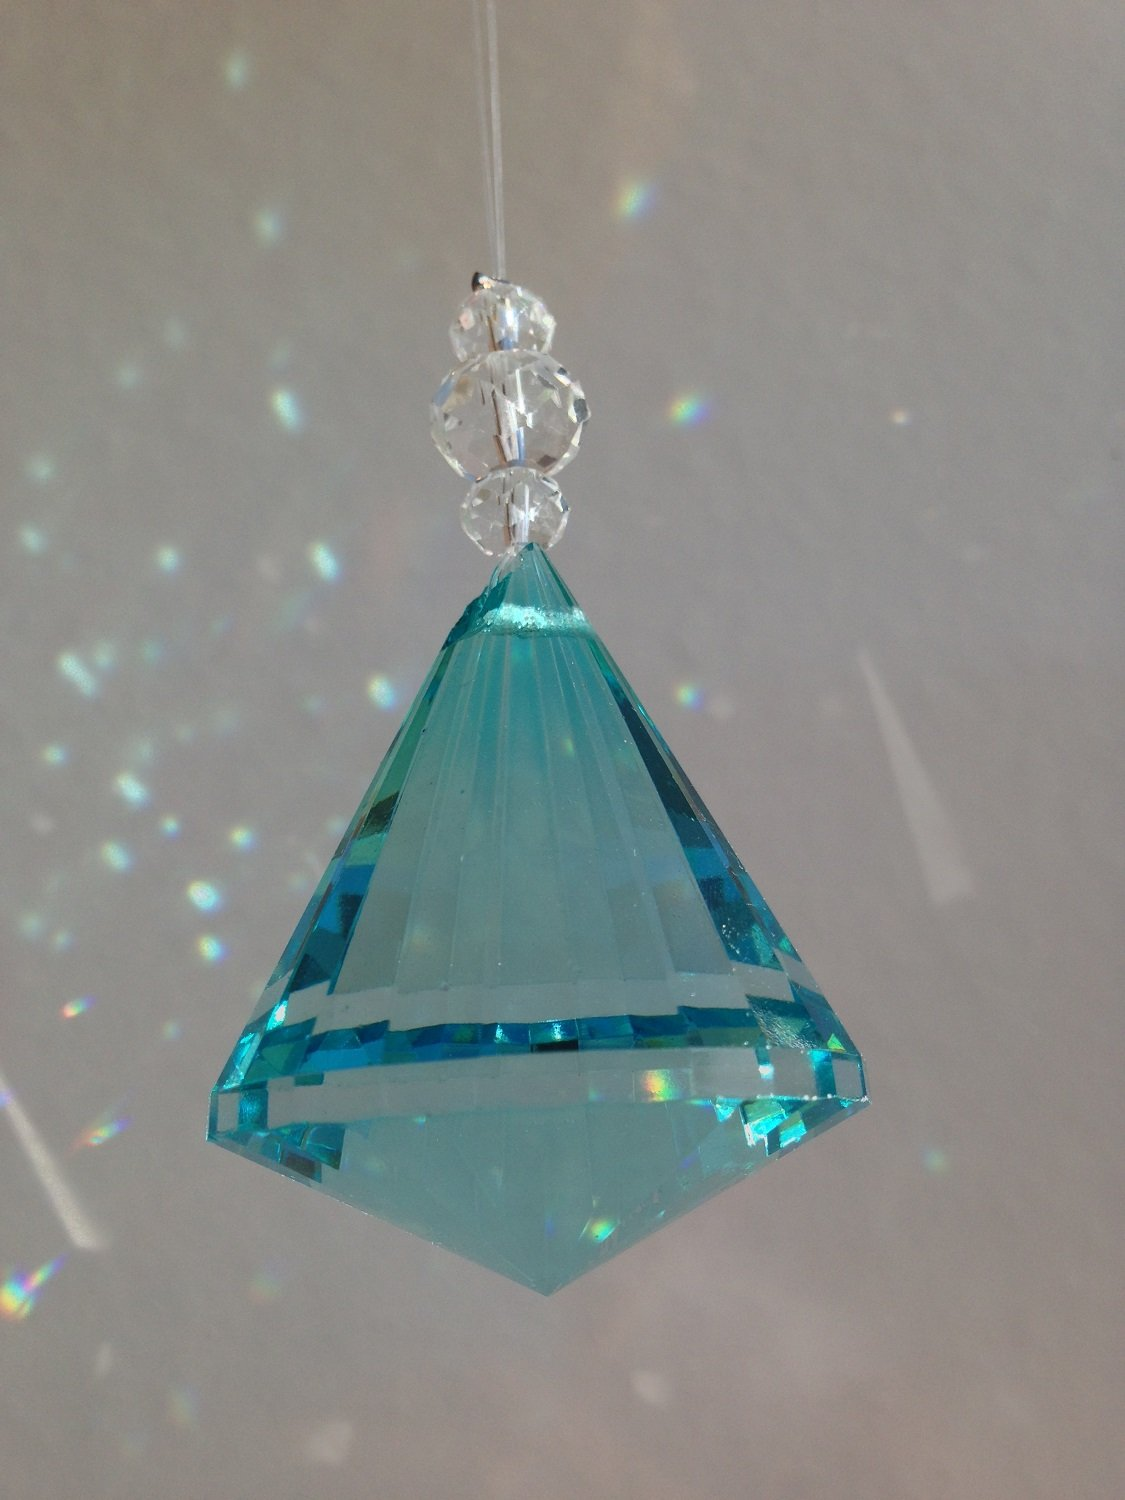 Hanging Multifaceted Teal Acrylic Prism Diamond Drop Ornament